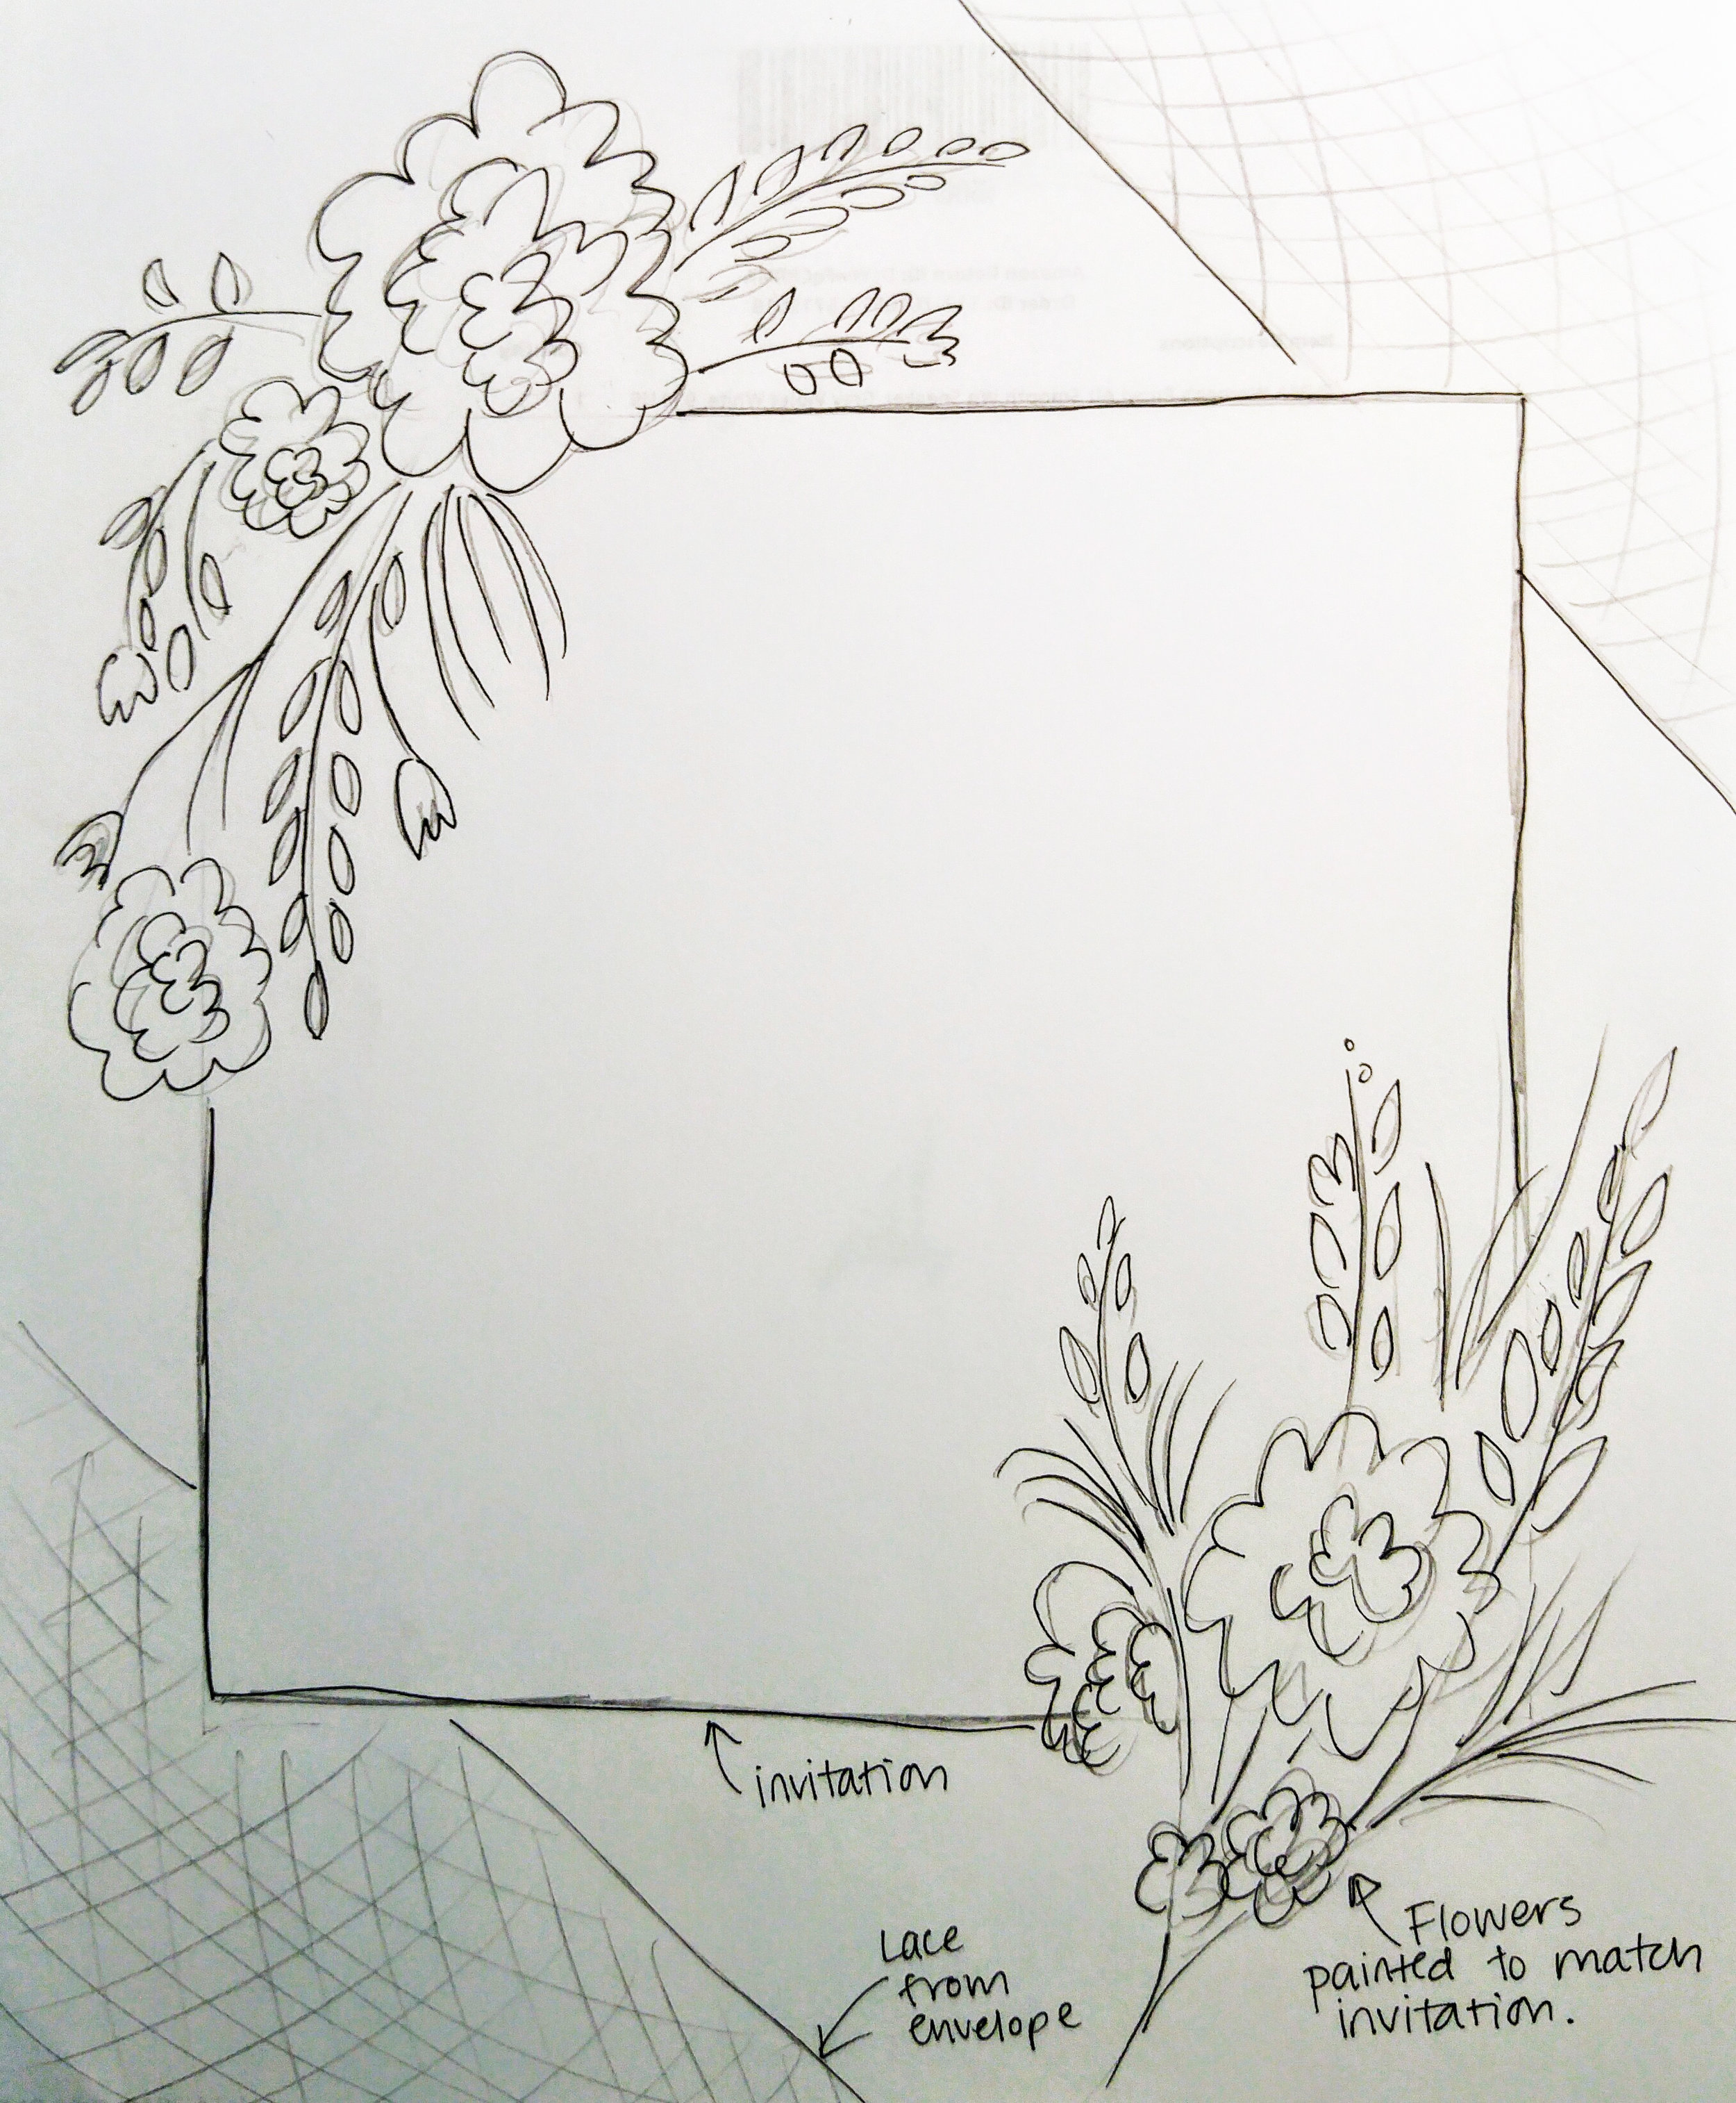 1-wedding invite sketch_Joanne.jpg